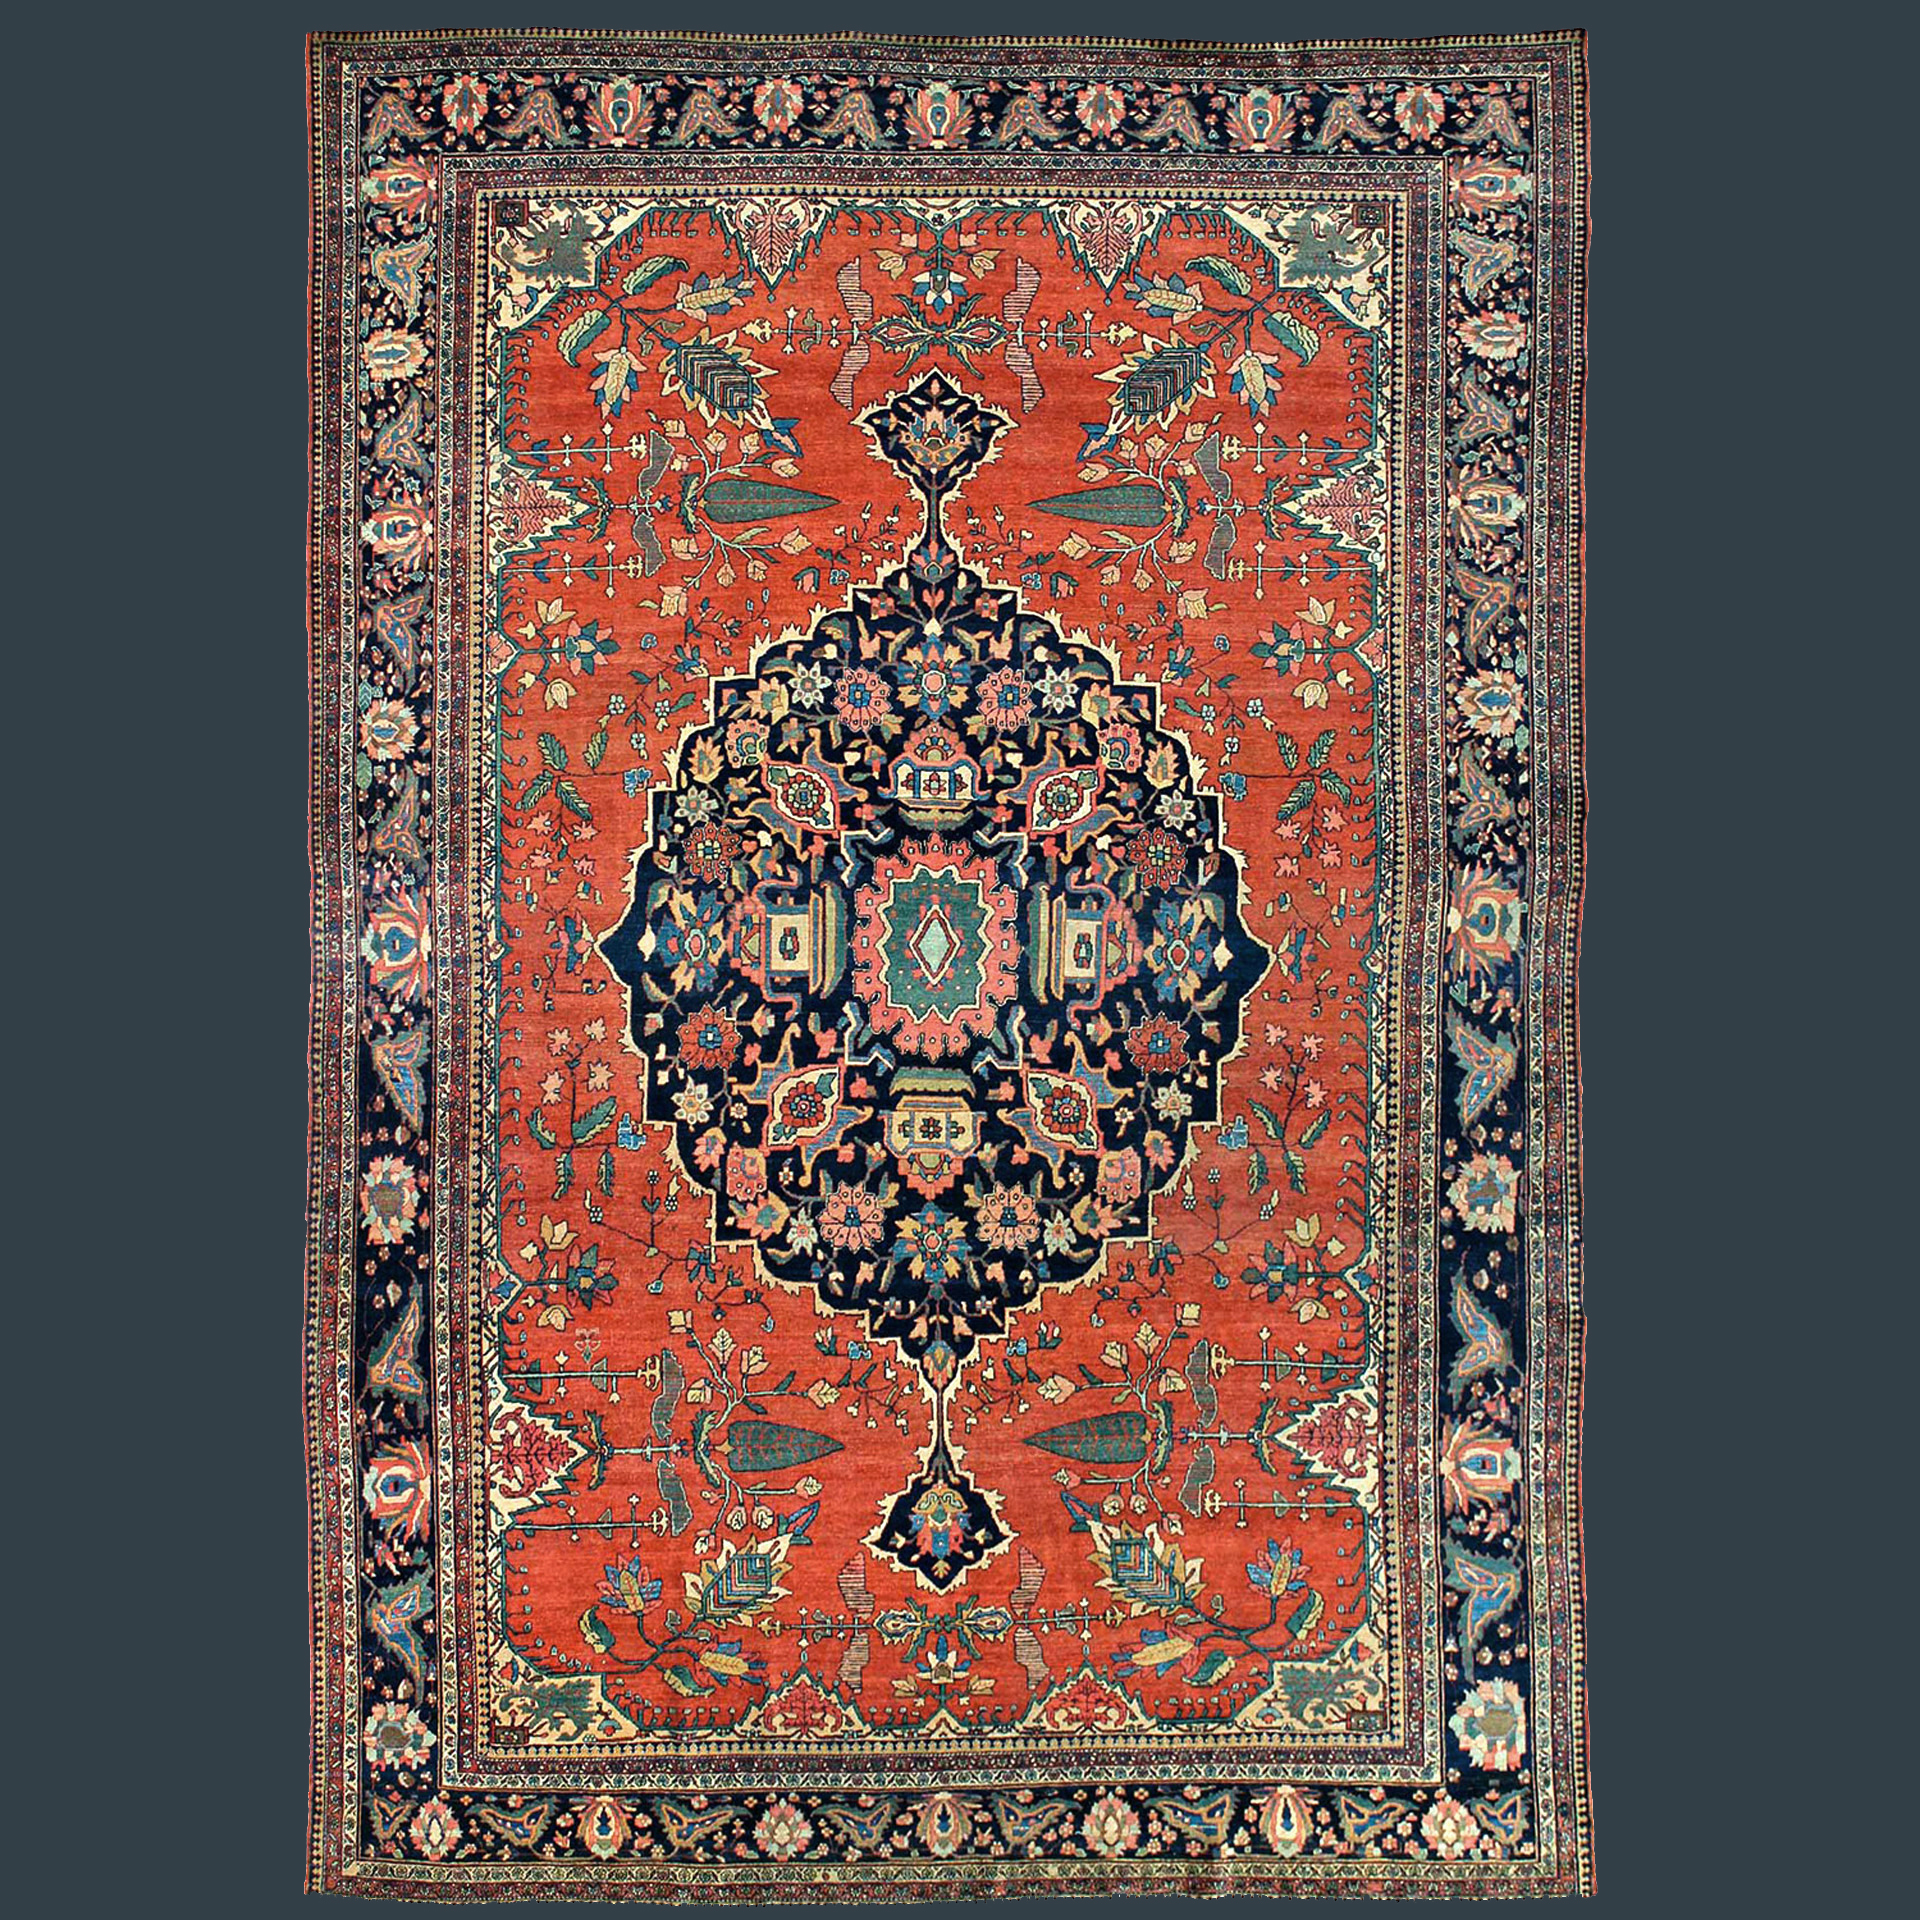 Antique Persian Fereghan Sarouk carpet with a central medallion and Cypress Trees in the field